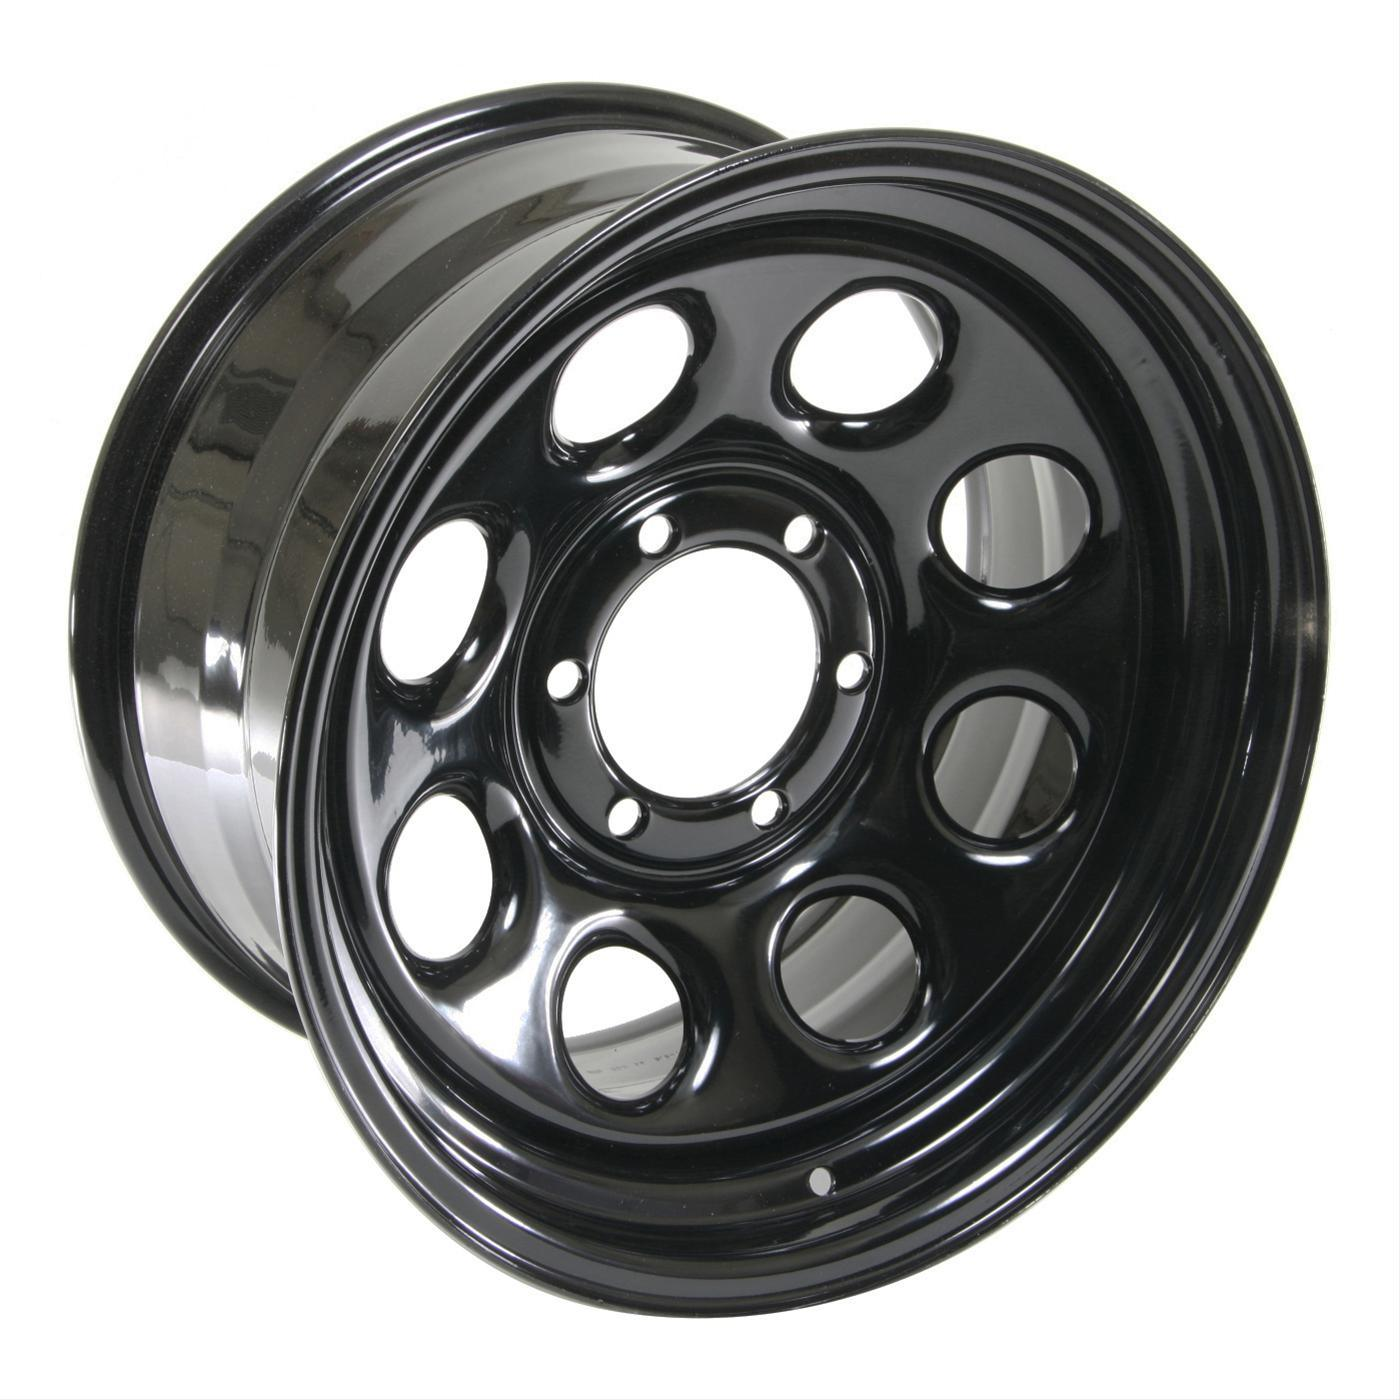 Steel Wheels For Sale >> China Steel Wheel Rim 4x4 Wheels Sport Rim On Sale China Wheel